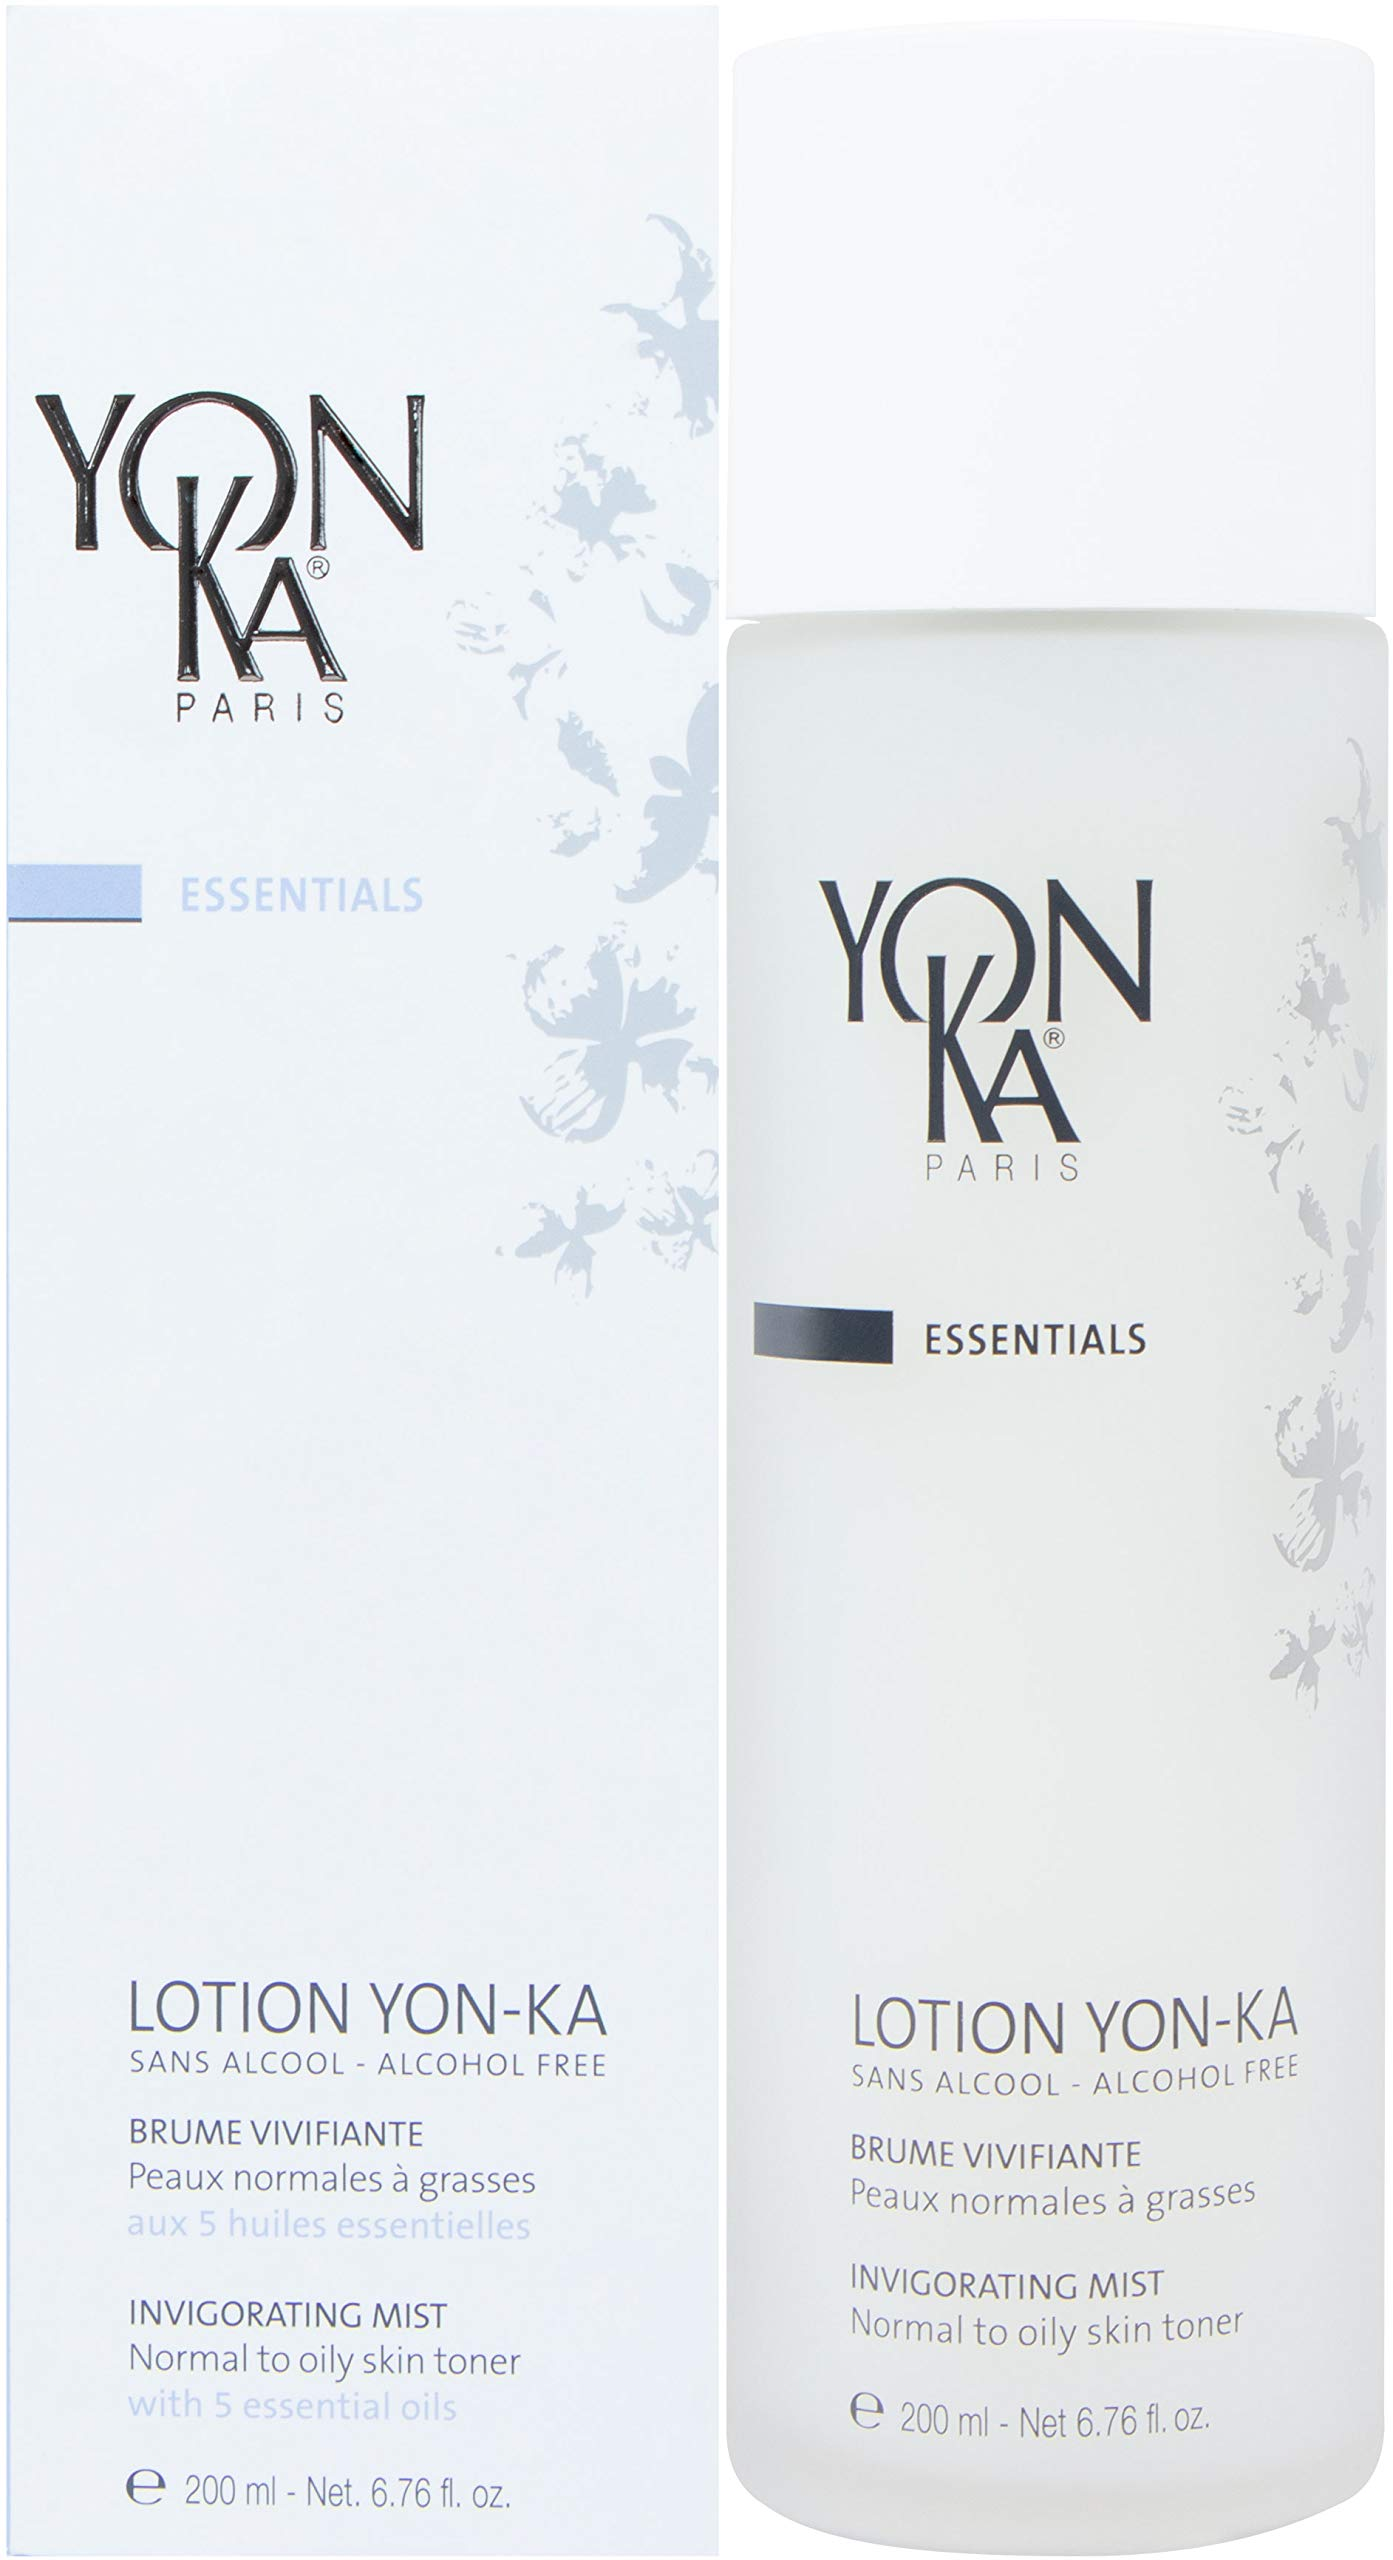 Yonka Facial Sprays And Mists To Normal And Oily Skin Toner, 6.76 Ounce by Yonka